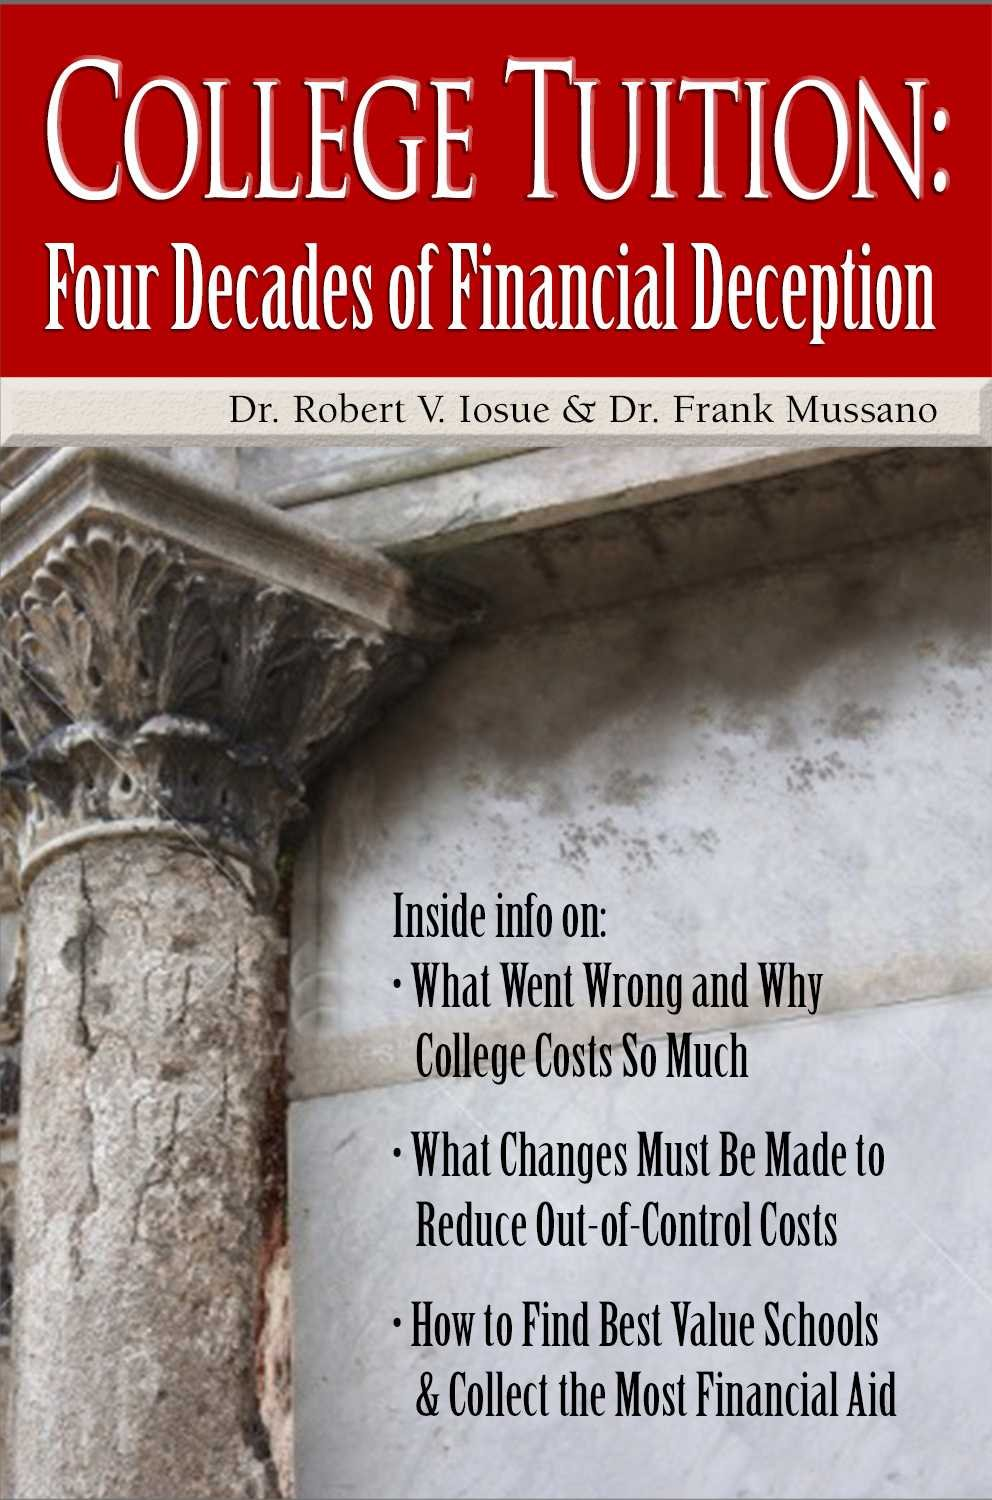 College Tuition: Four Decades of Financial Deception PDF